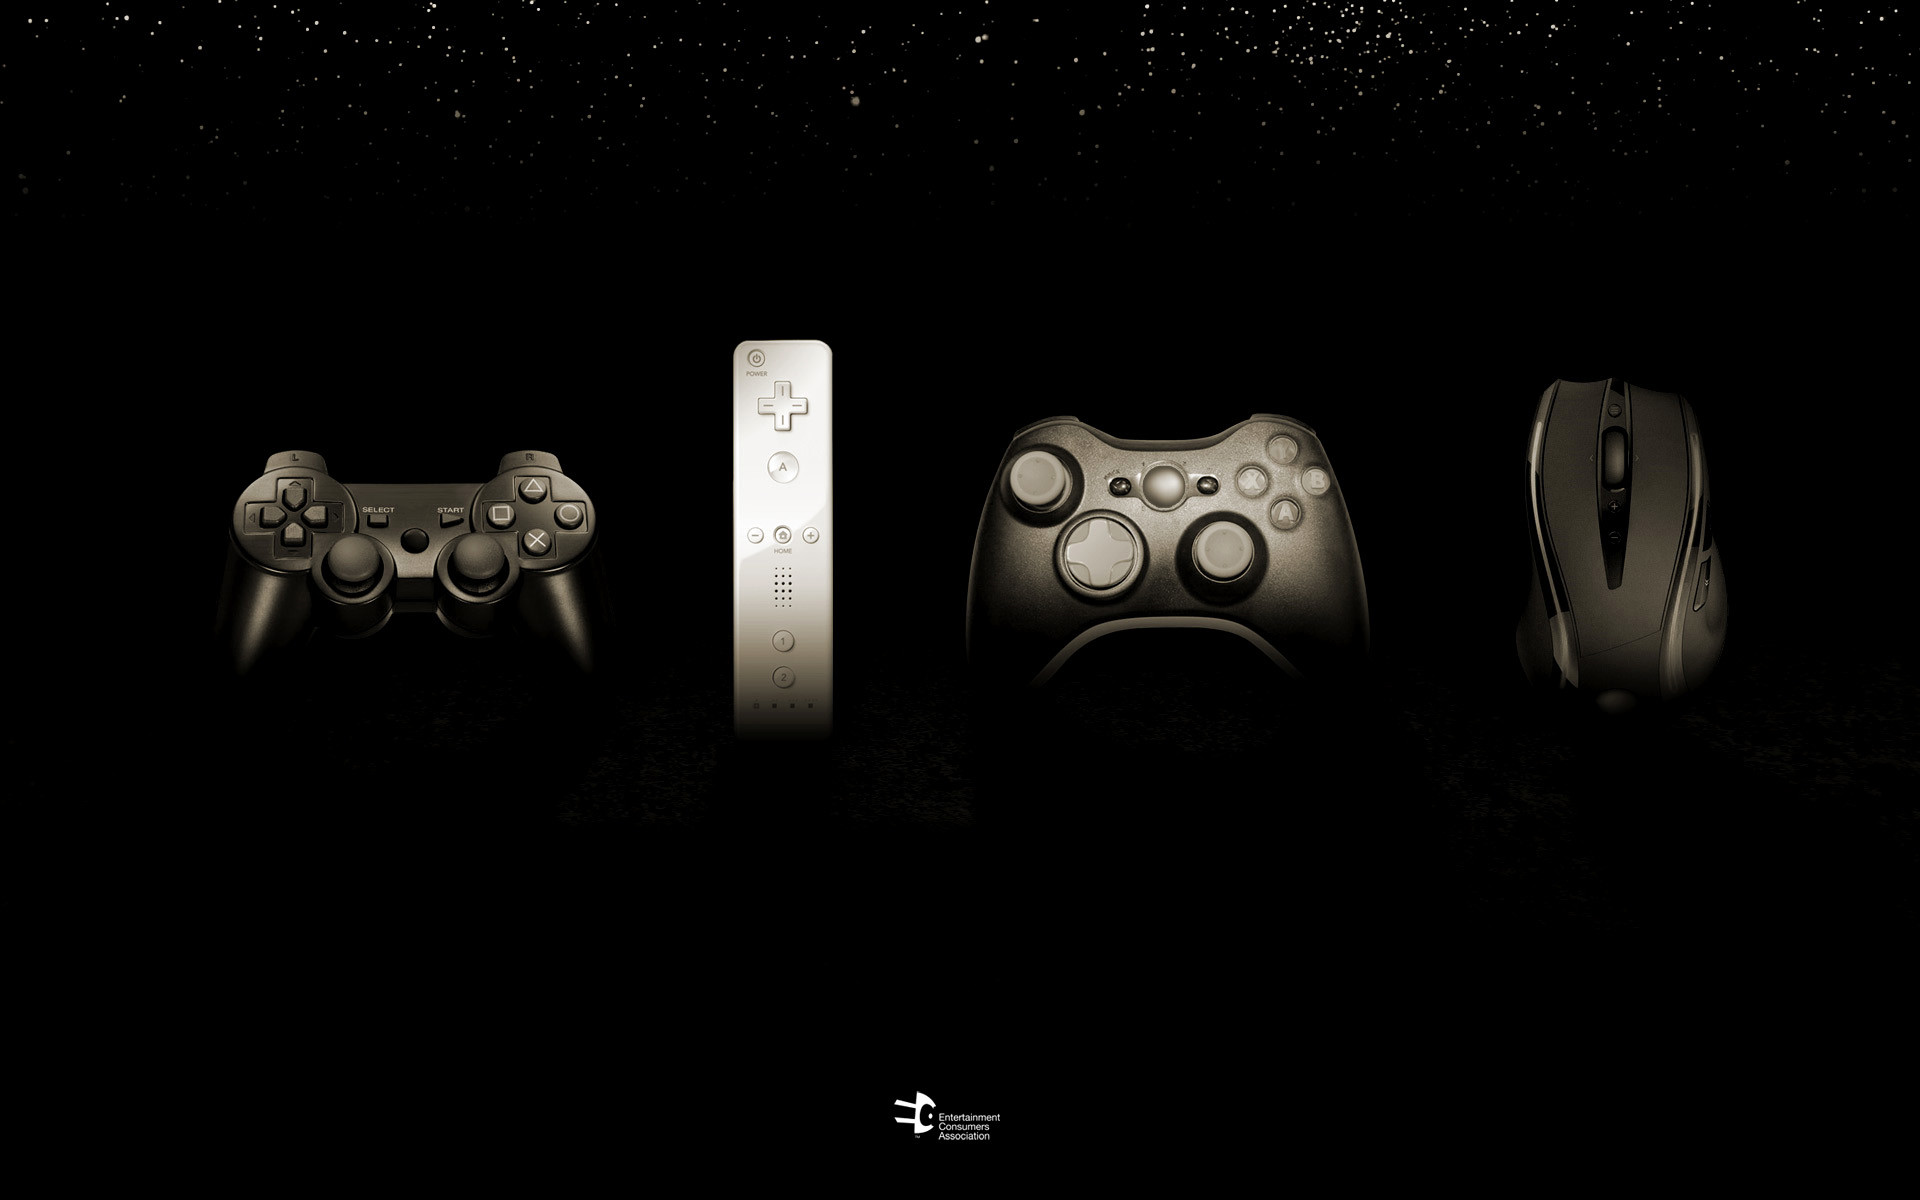 1920x1200 Video Game Controller Wallpapers For Iphone | Amazing Wallpapers |  Pinterest | Game controller and Wallpaper